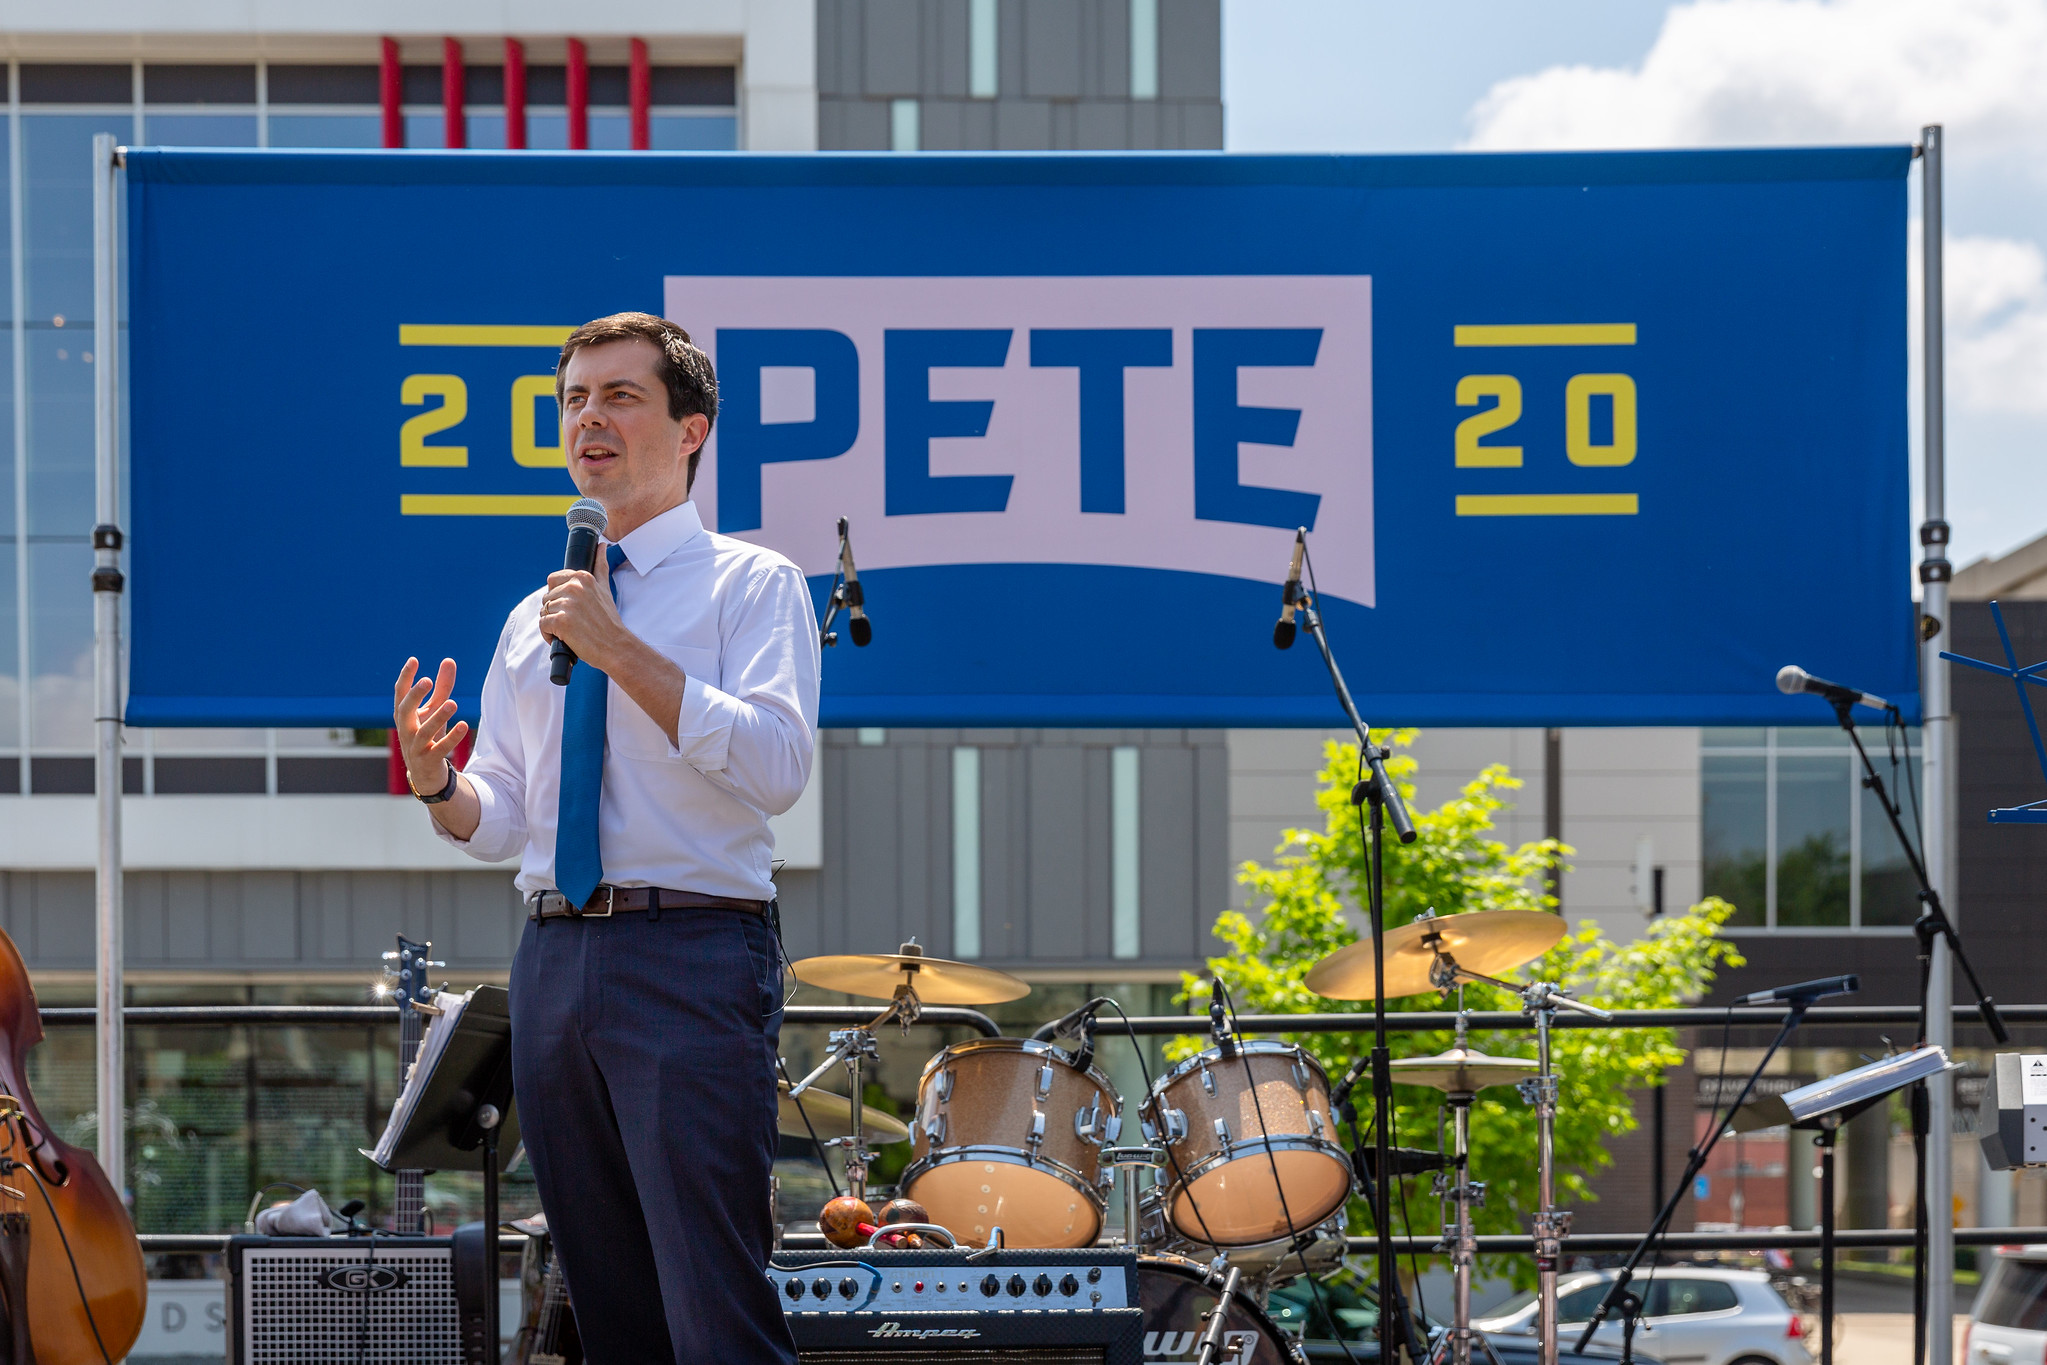 Pete Buttigieg May Appoint Big-Dollar Donors if Elected